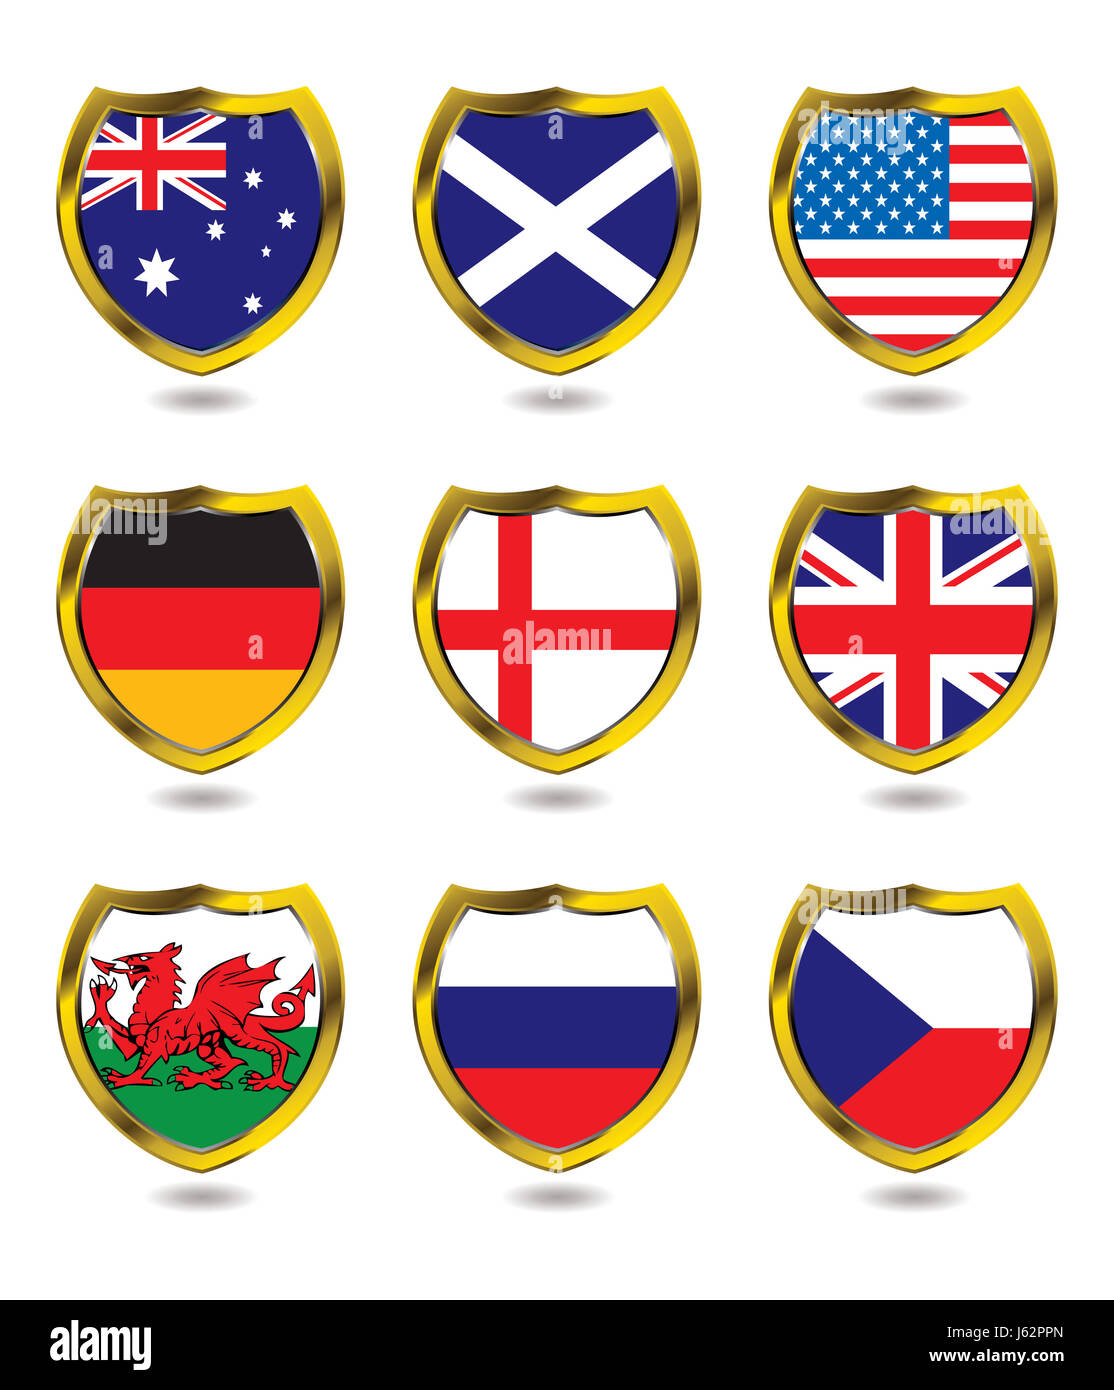 america flag country nation icon nationality shield logo blue